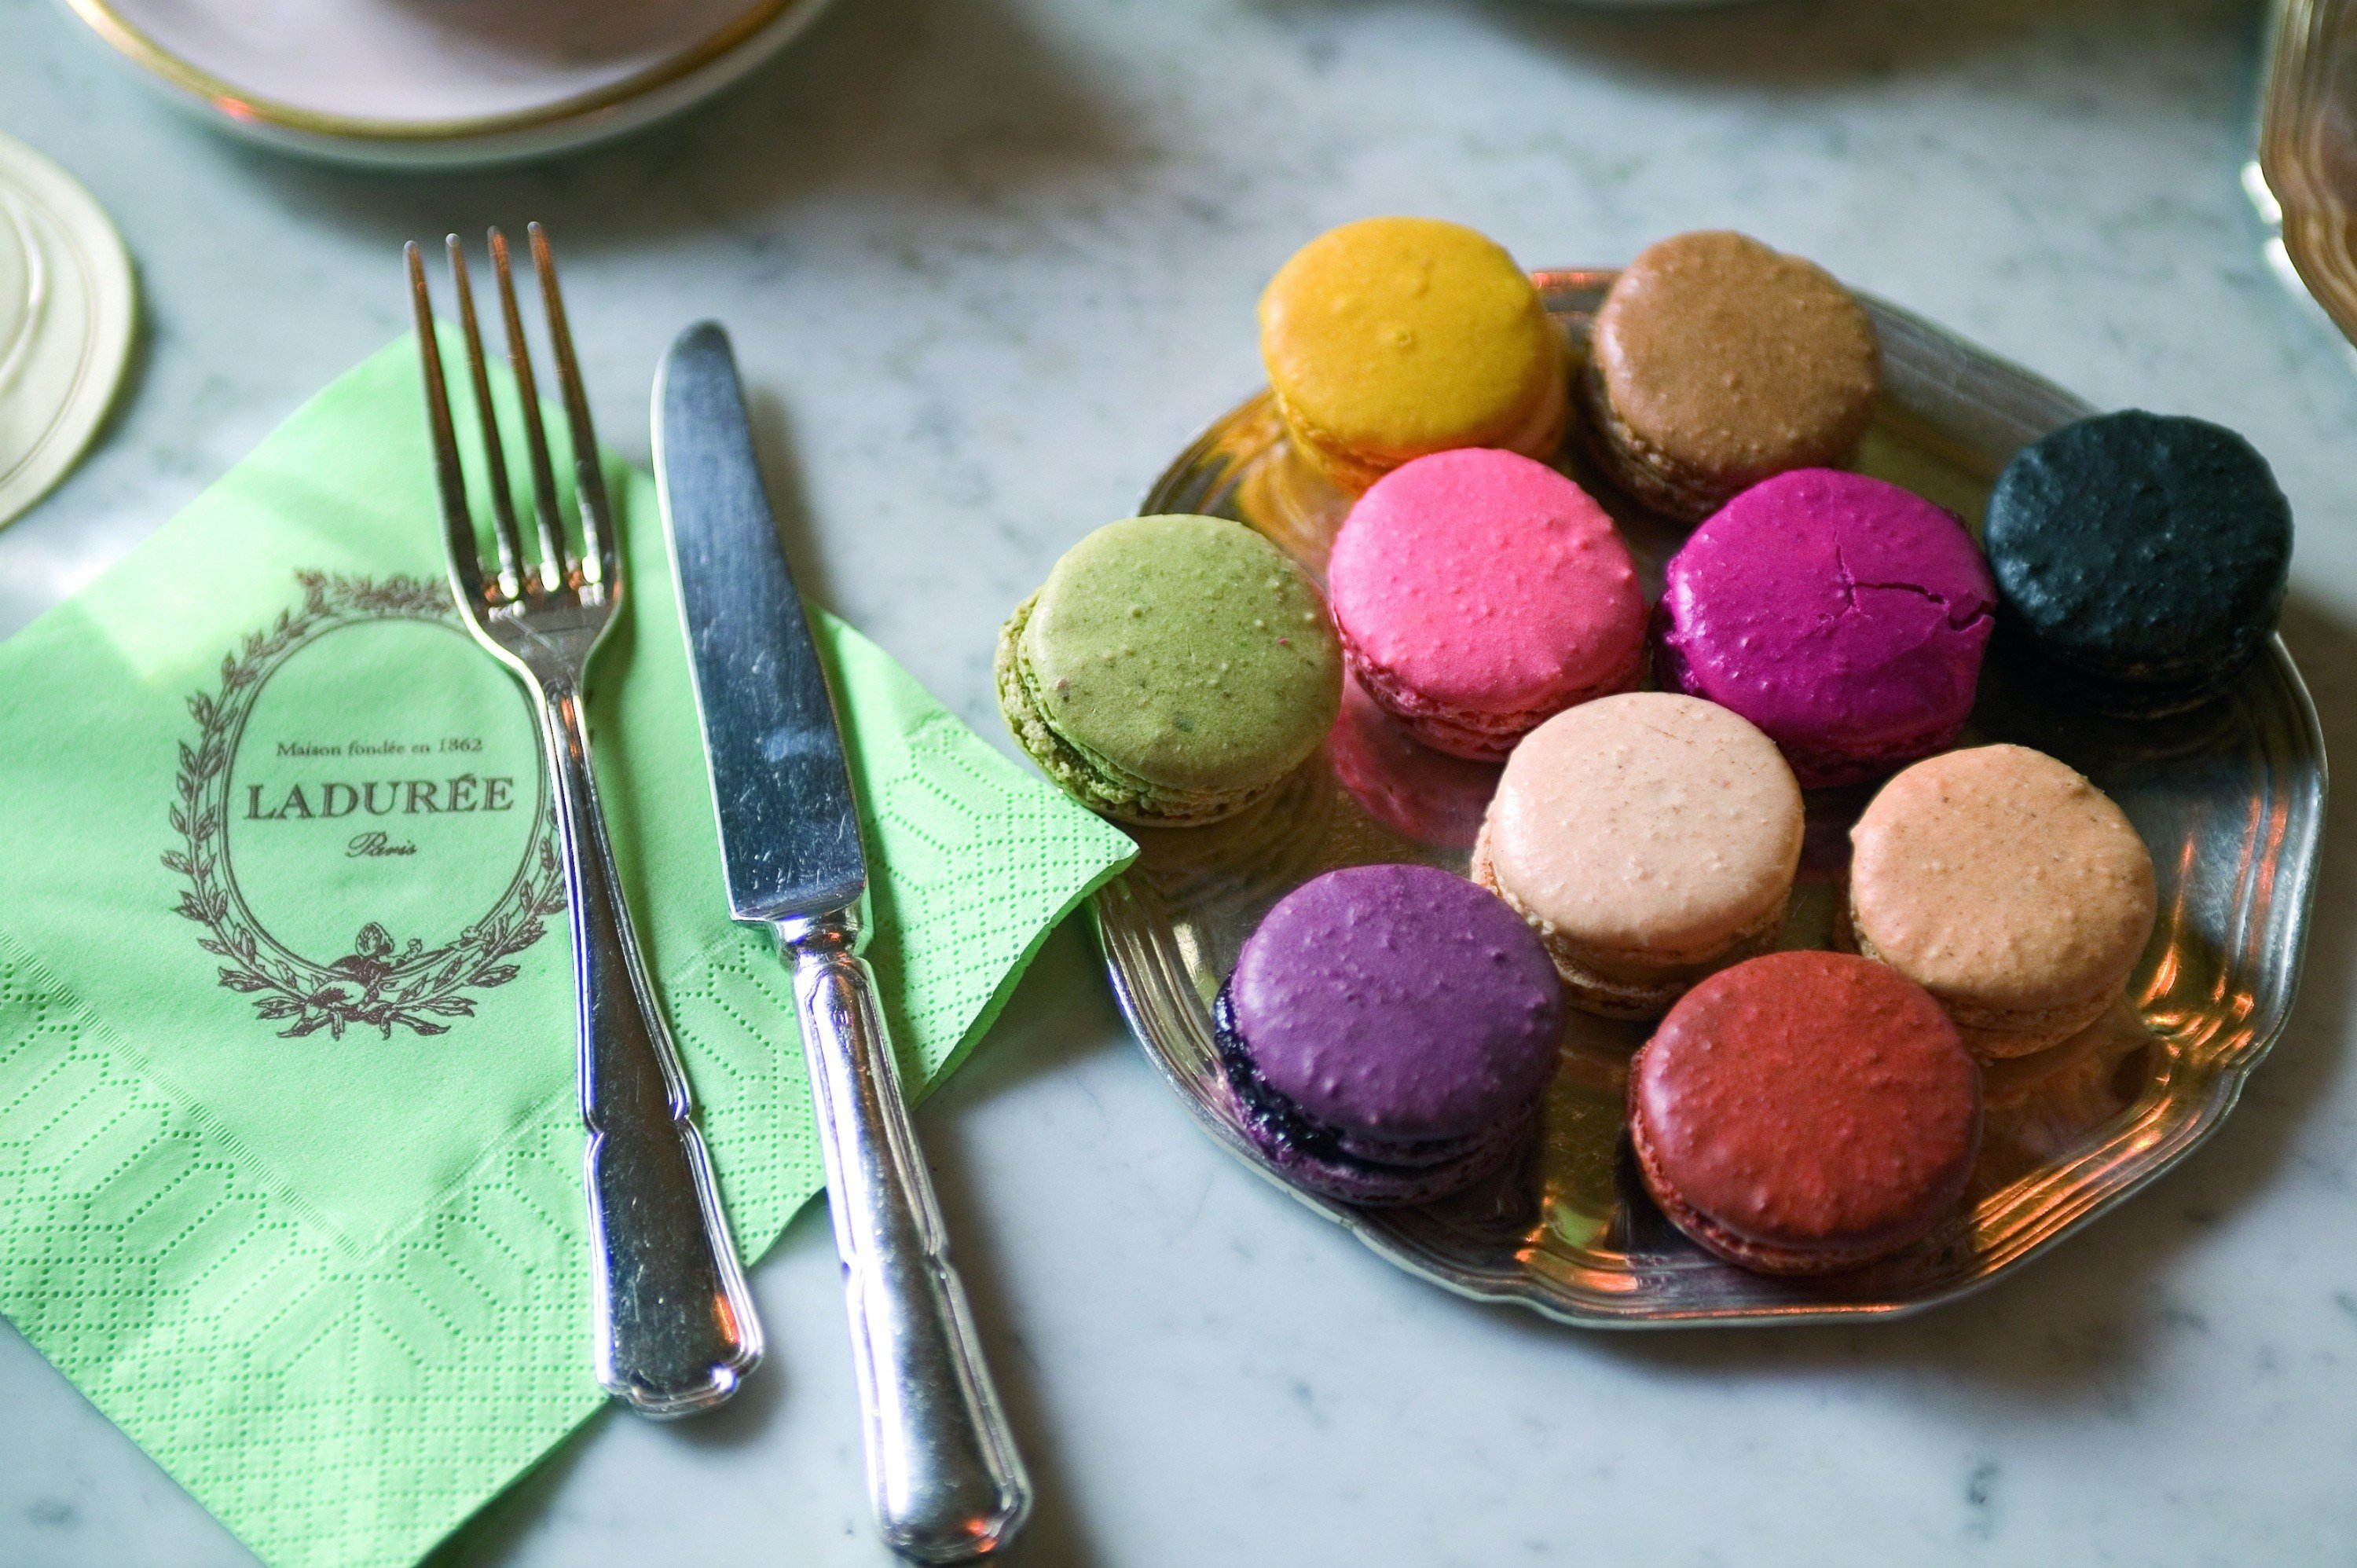 It's a tradition for us to have lunch at the Ladurée café in Paris. Here's why.